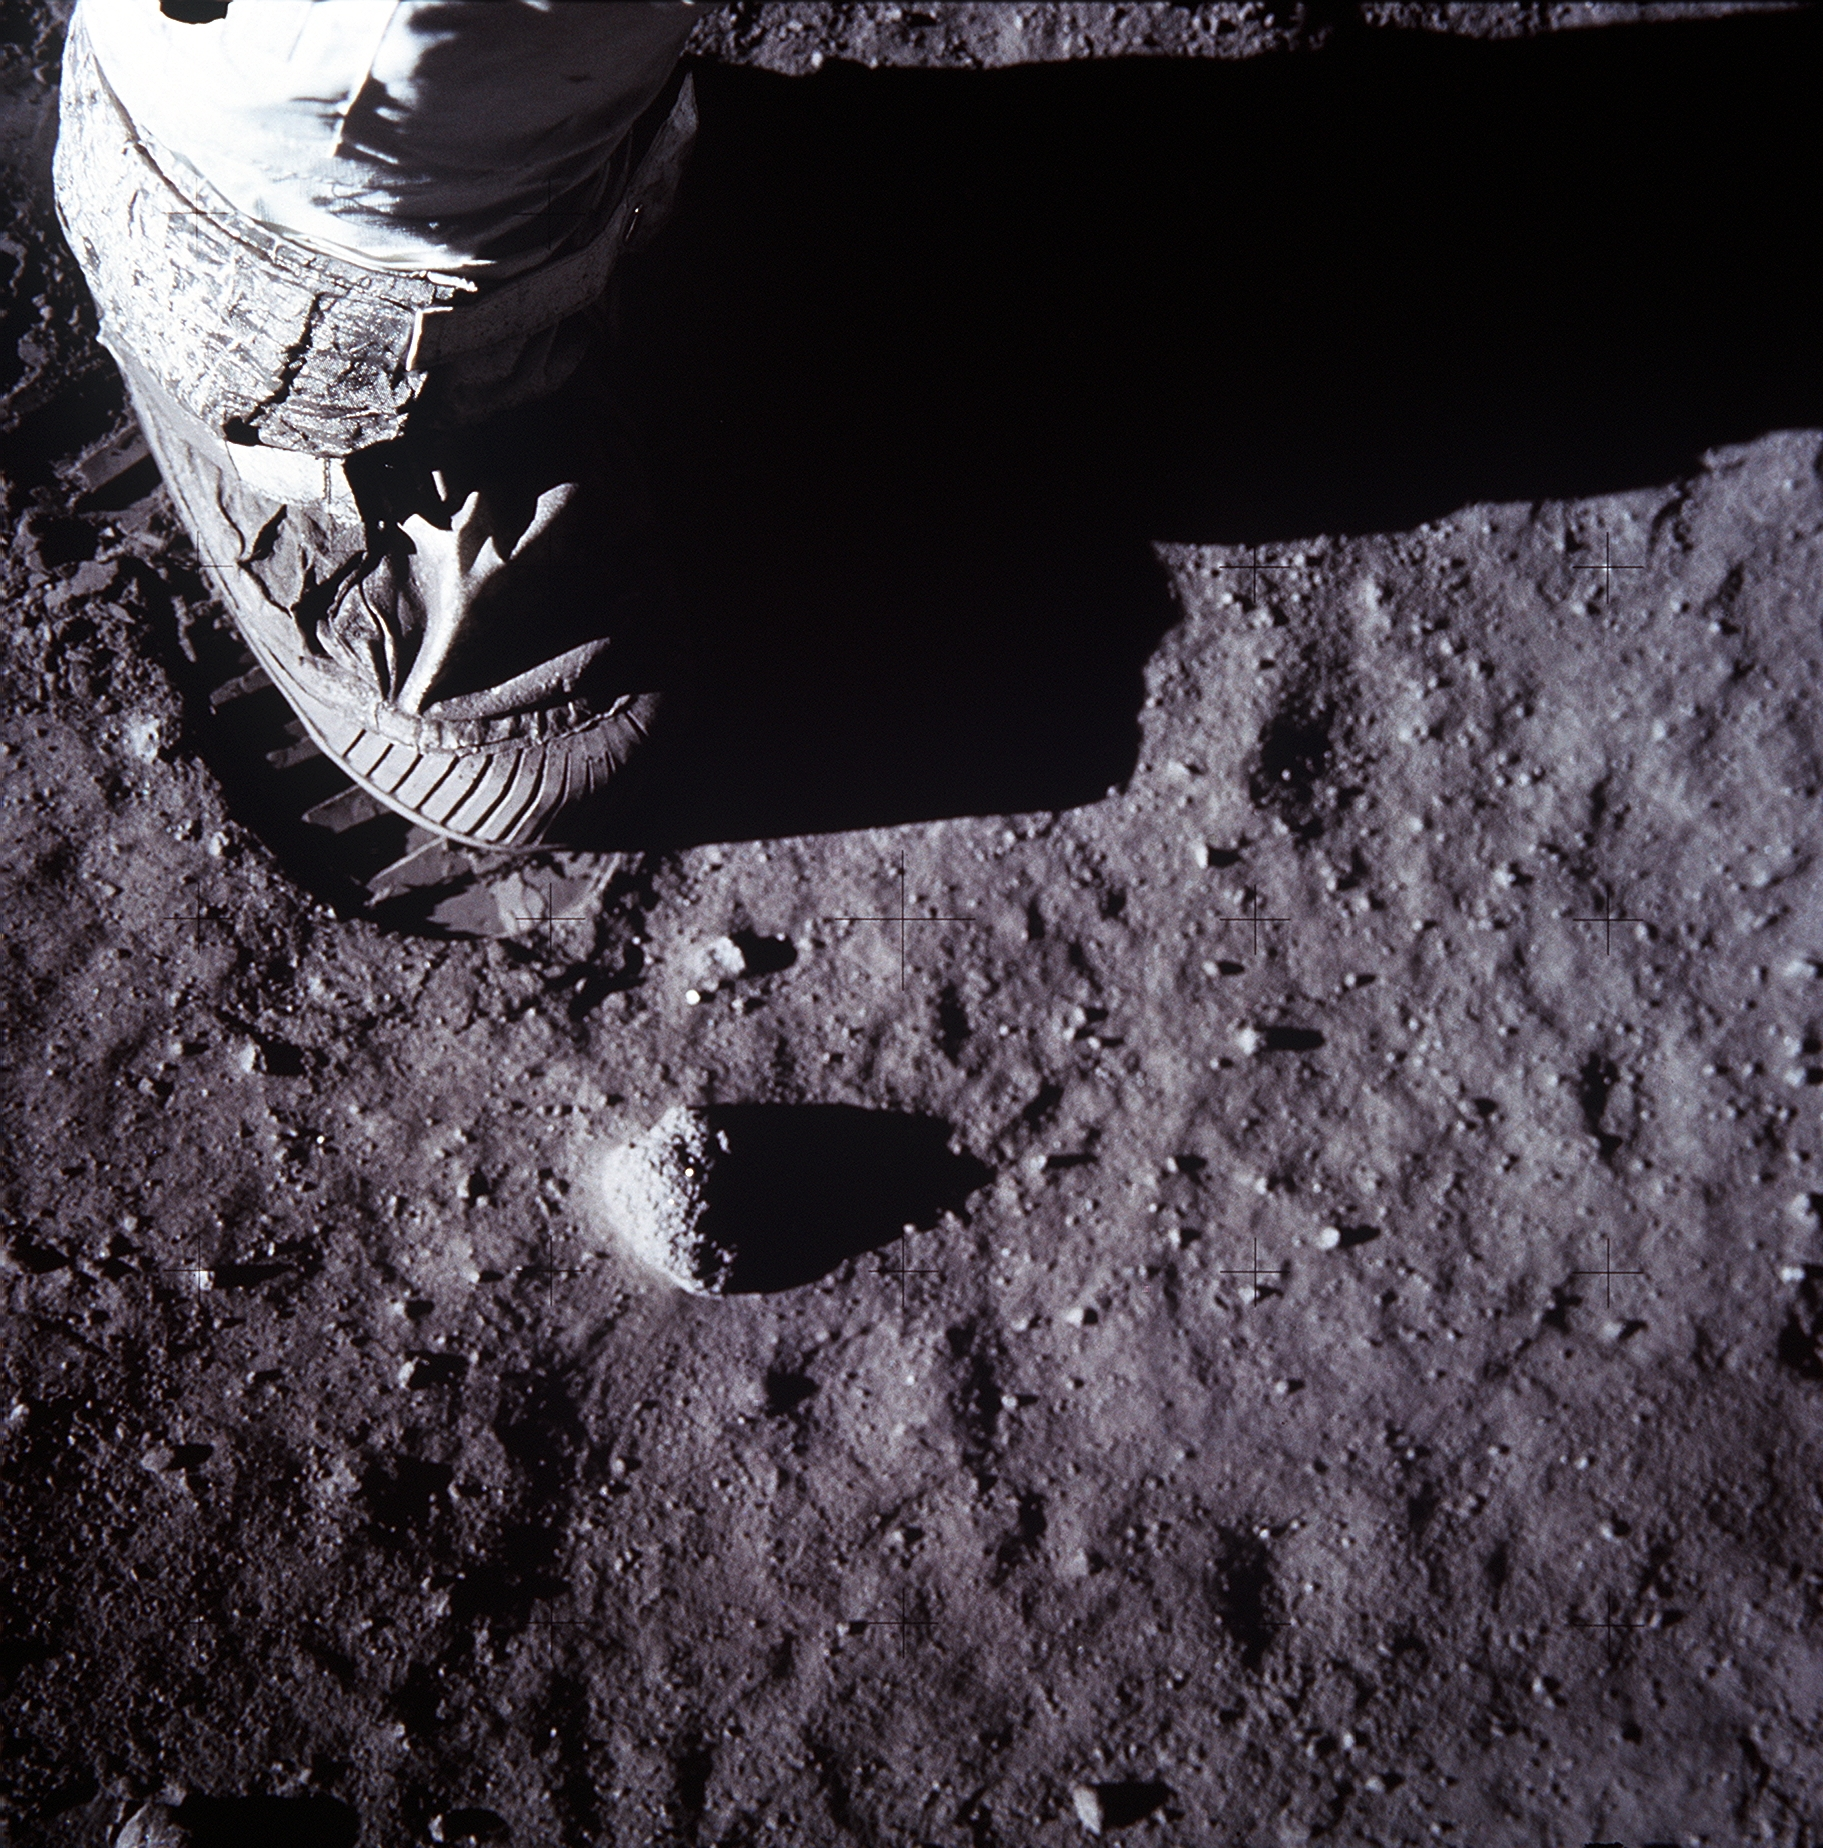 Apollo 11: Close-up of Astronaut's Foot and Footprint in Lunar Soil